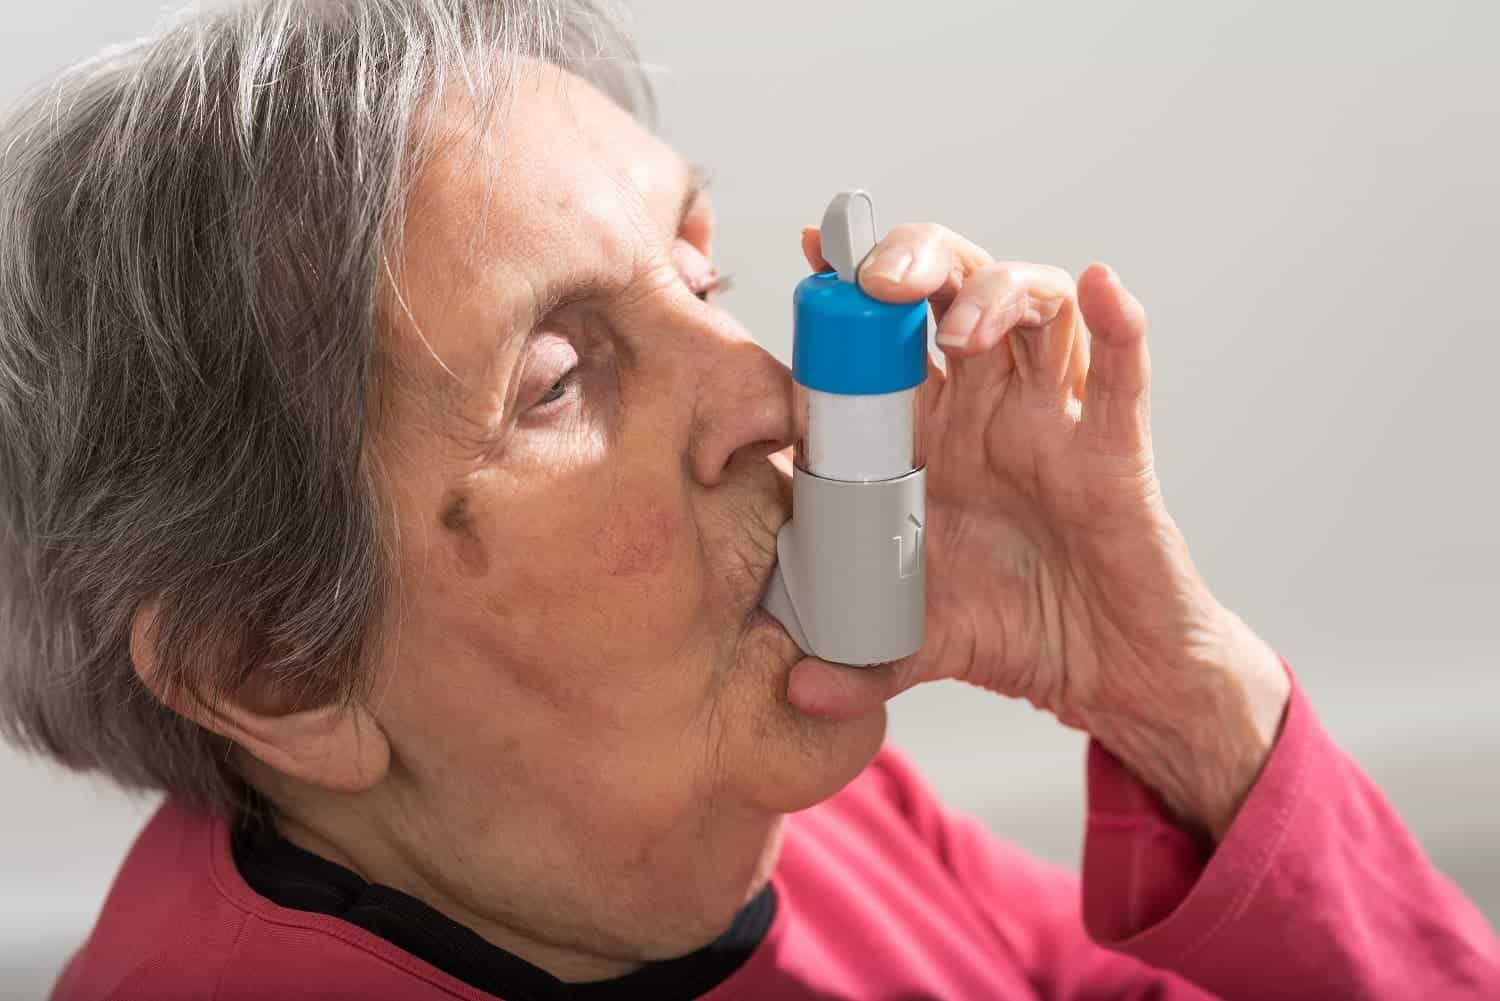 Patient taking inhaler hopsital ward